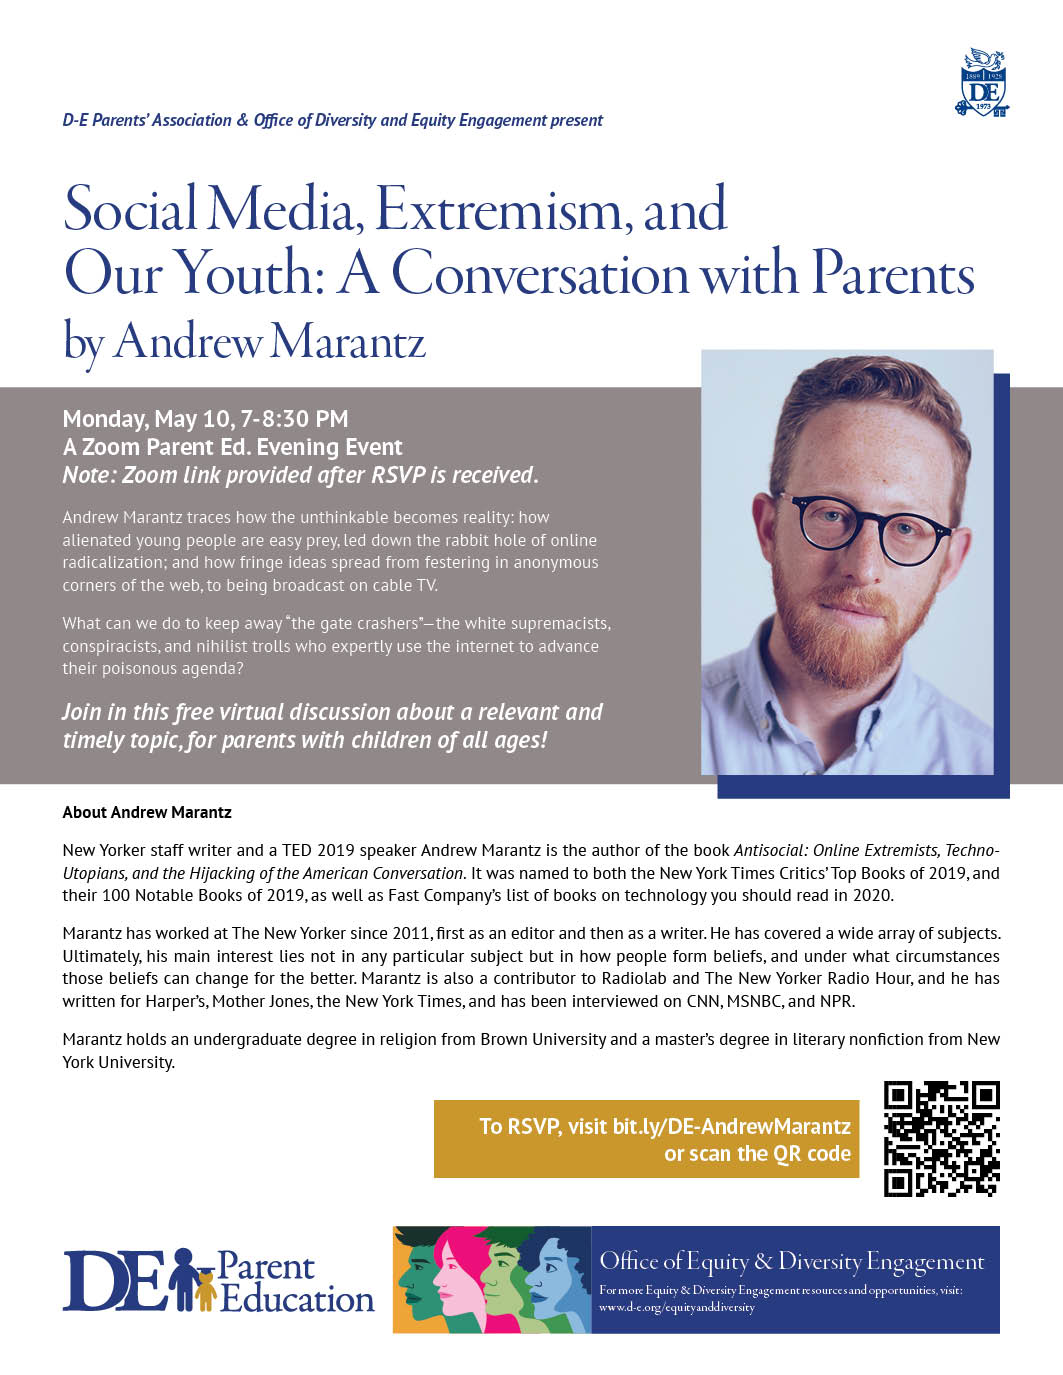 Social Media, Extremism, and  Our Youth: A Conversation with Parents by Andrew Marantz